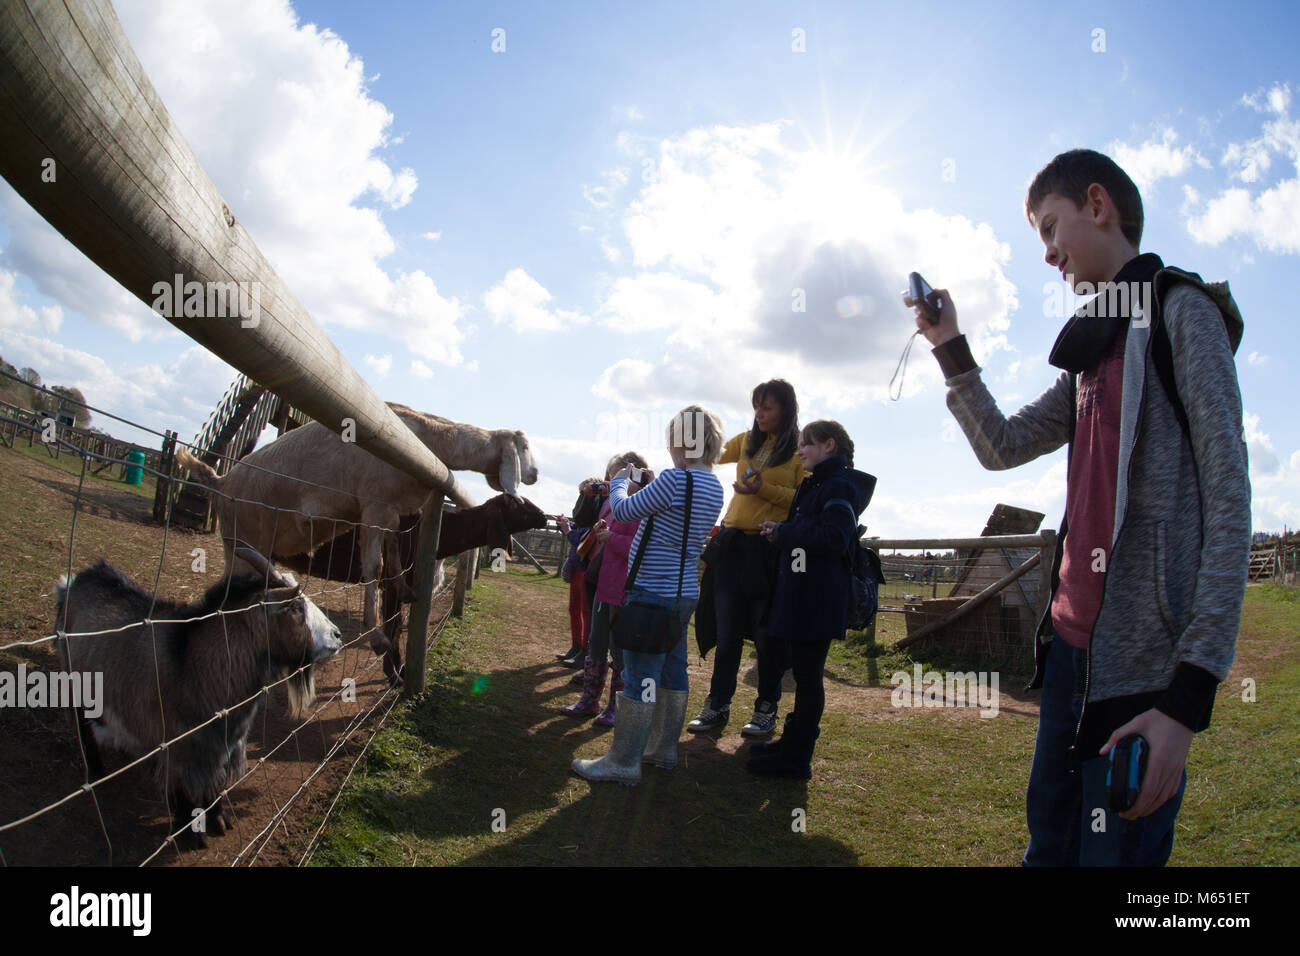 group of mixed age and gender children visiting farm, taking photos of the animals - Stock Image